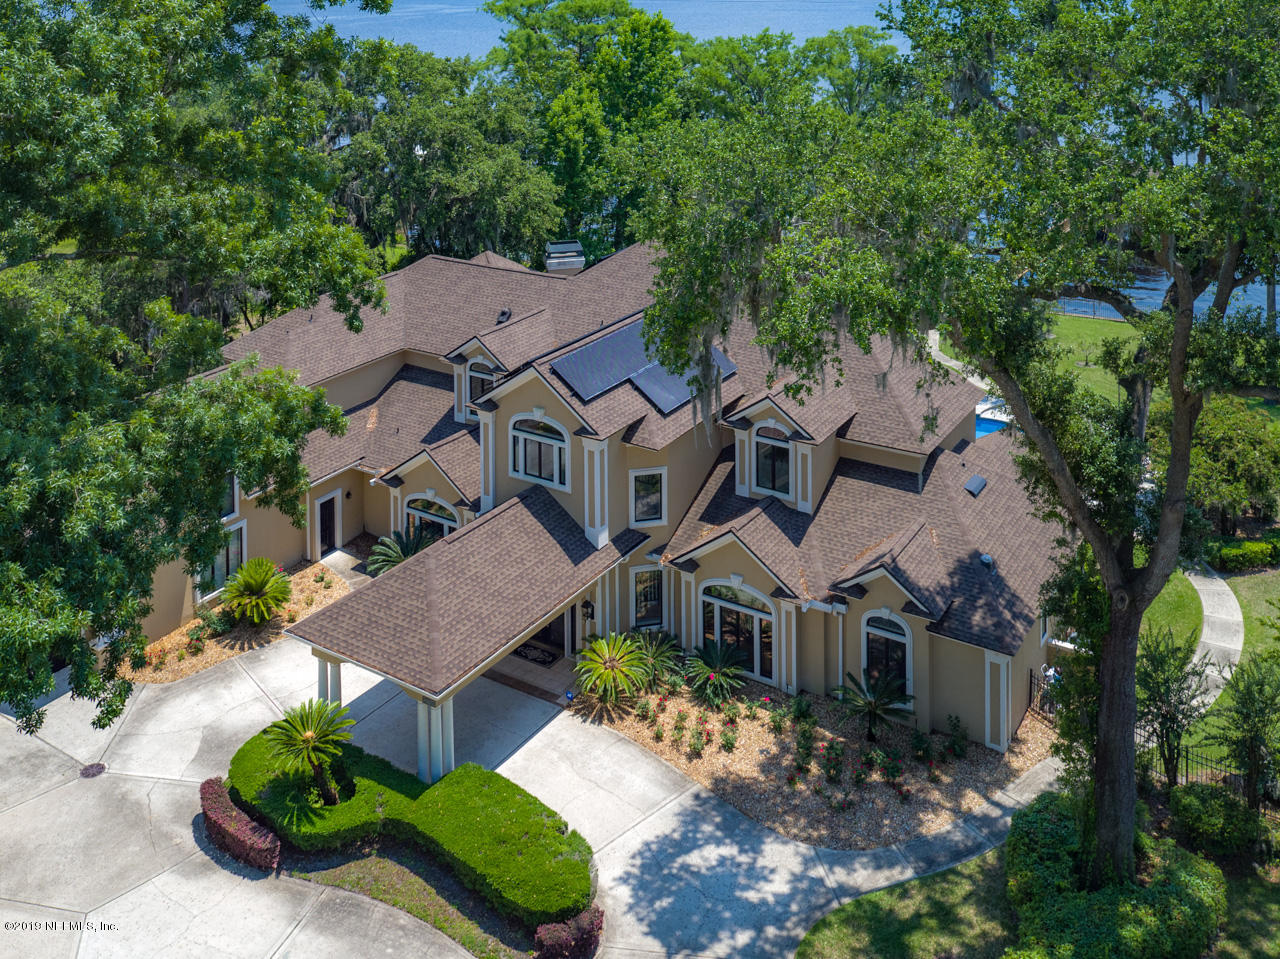 12799 CAMELLIA BAY, JACKSONVILLE, FLORIDA 32223, 6 Bedrooms Bedrooms, ,7 BathroomsBathrooms,Residential - single family,For sale,CAMELLIA BAY,1010377